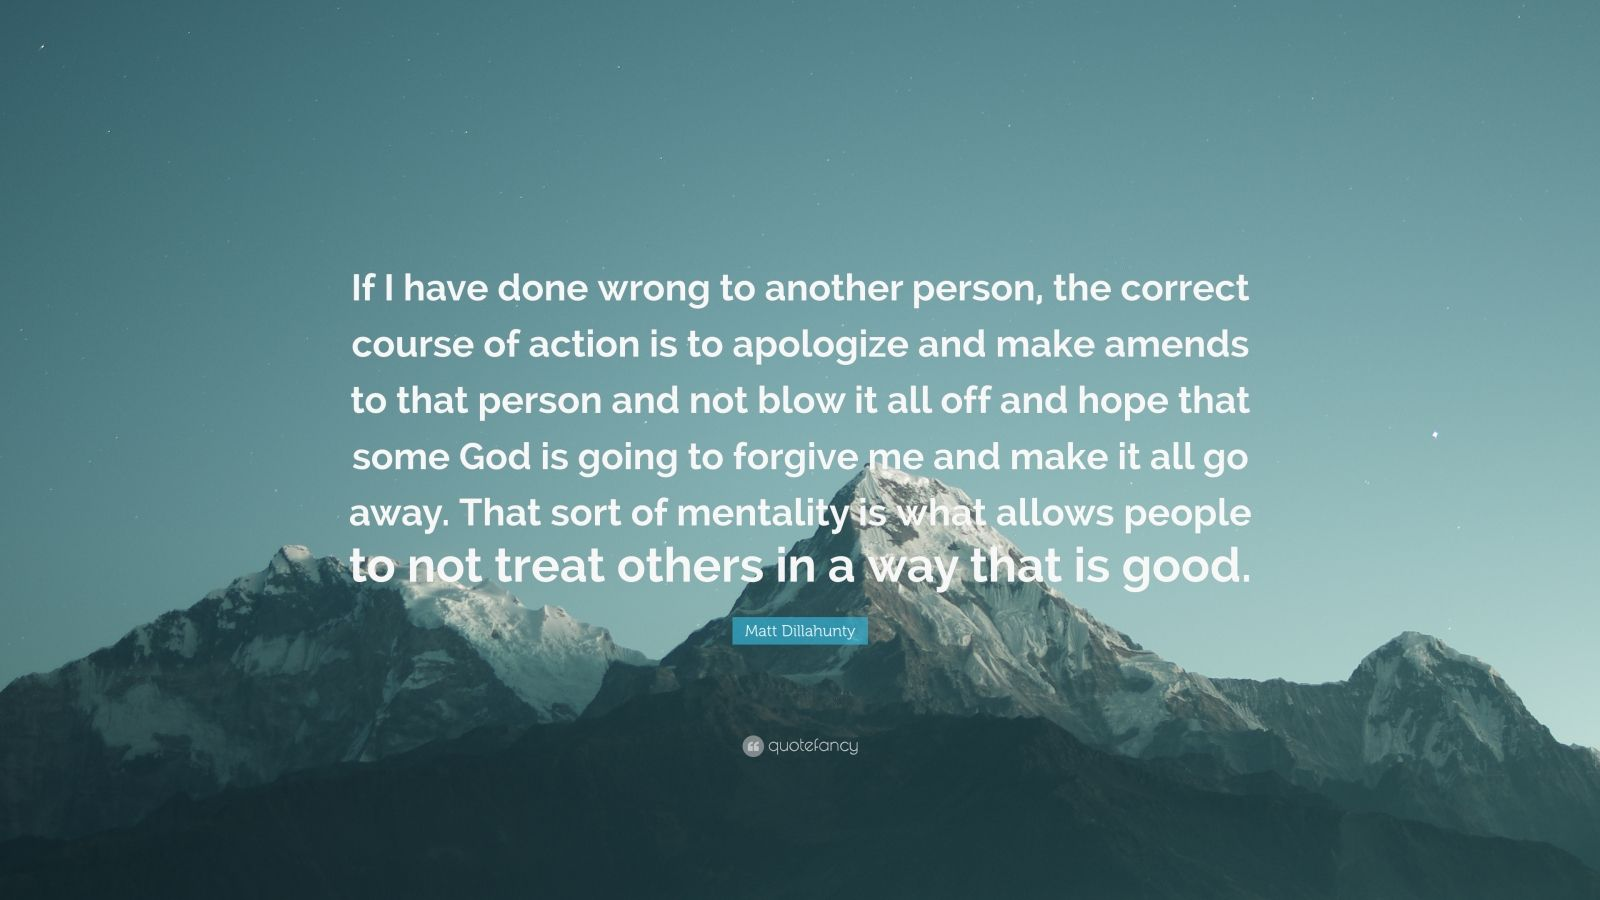 """Matt Dillahunty Quote: """"If I have done wrong to another person, the correct course of action is to apologize and make amends to that person and not blow it all off and hope that some God is going to forgive me and make it all go away. That sort of mentality is what allows people to not treat others in a way that is good."""""""